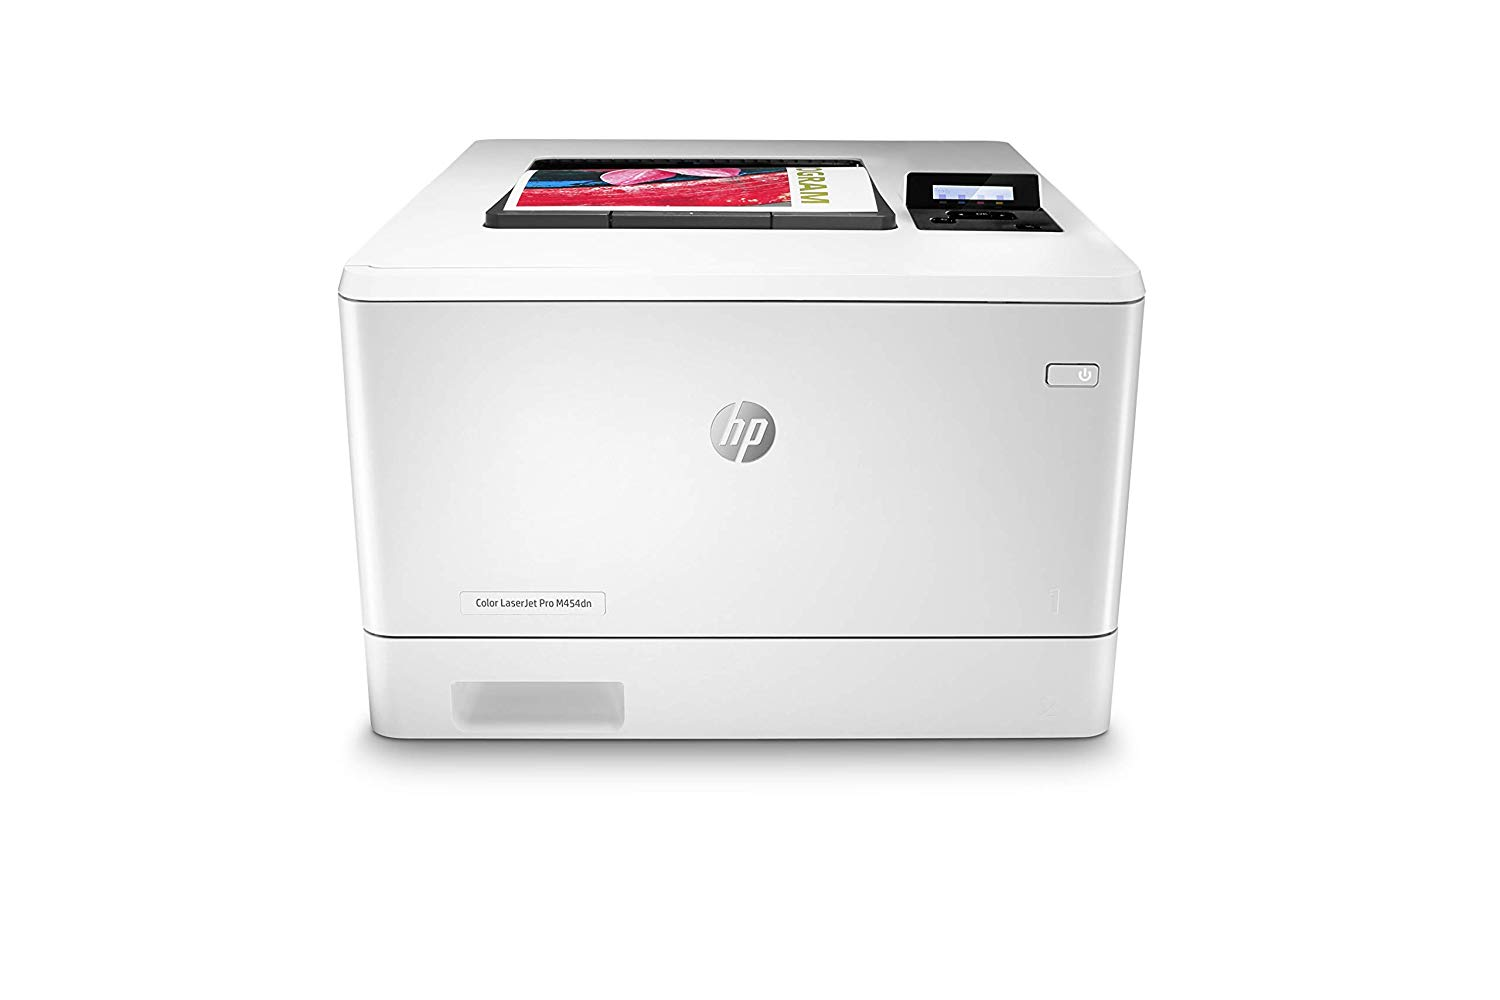 HP Color LaserJet Pro M454dn Printer (W1Y44A) – Ethernet Only